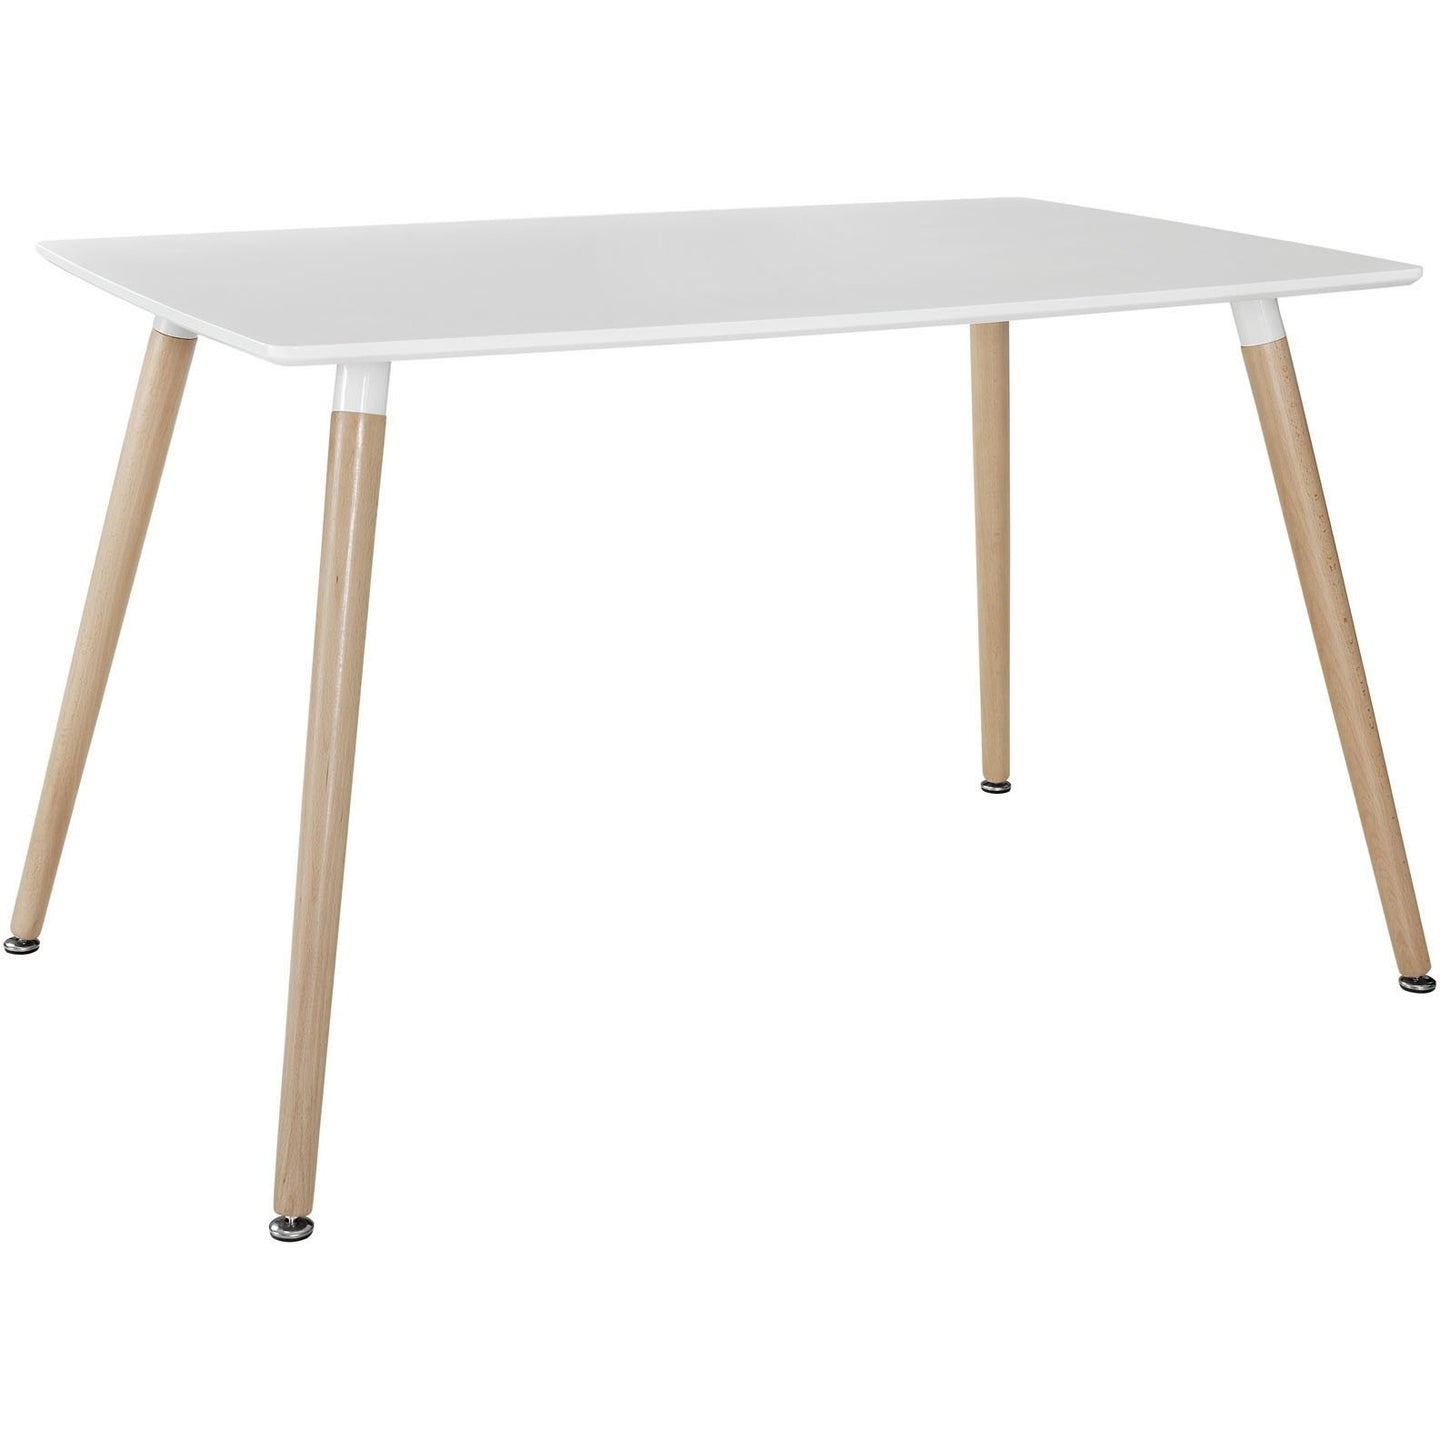 Modway Furniture Field Modern Dining Table EEI-1056-WHI-Minimal & Modern